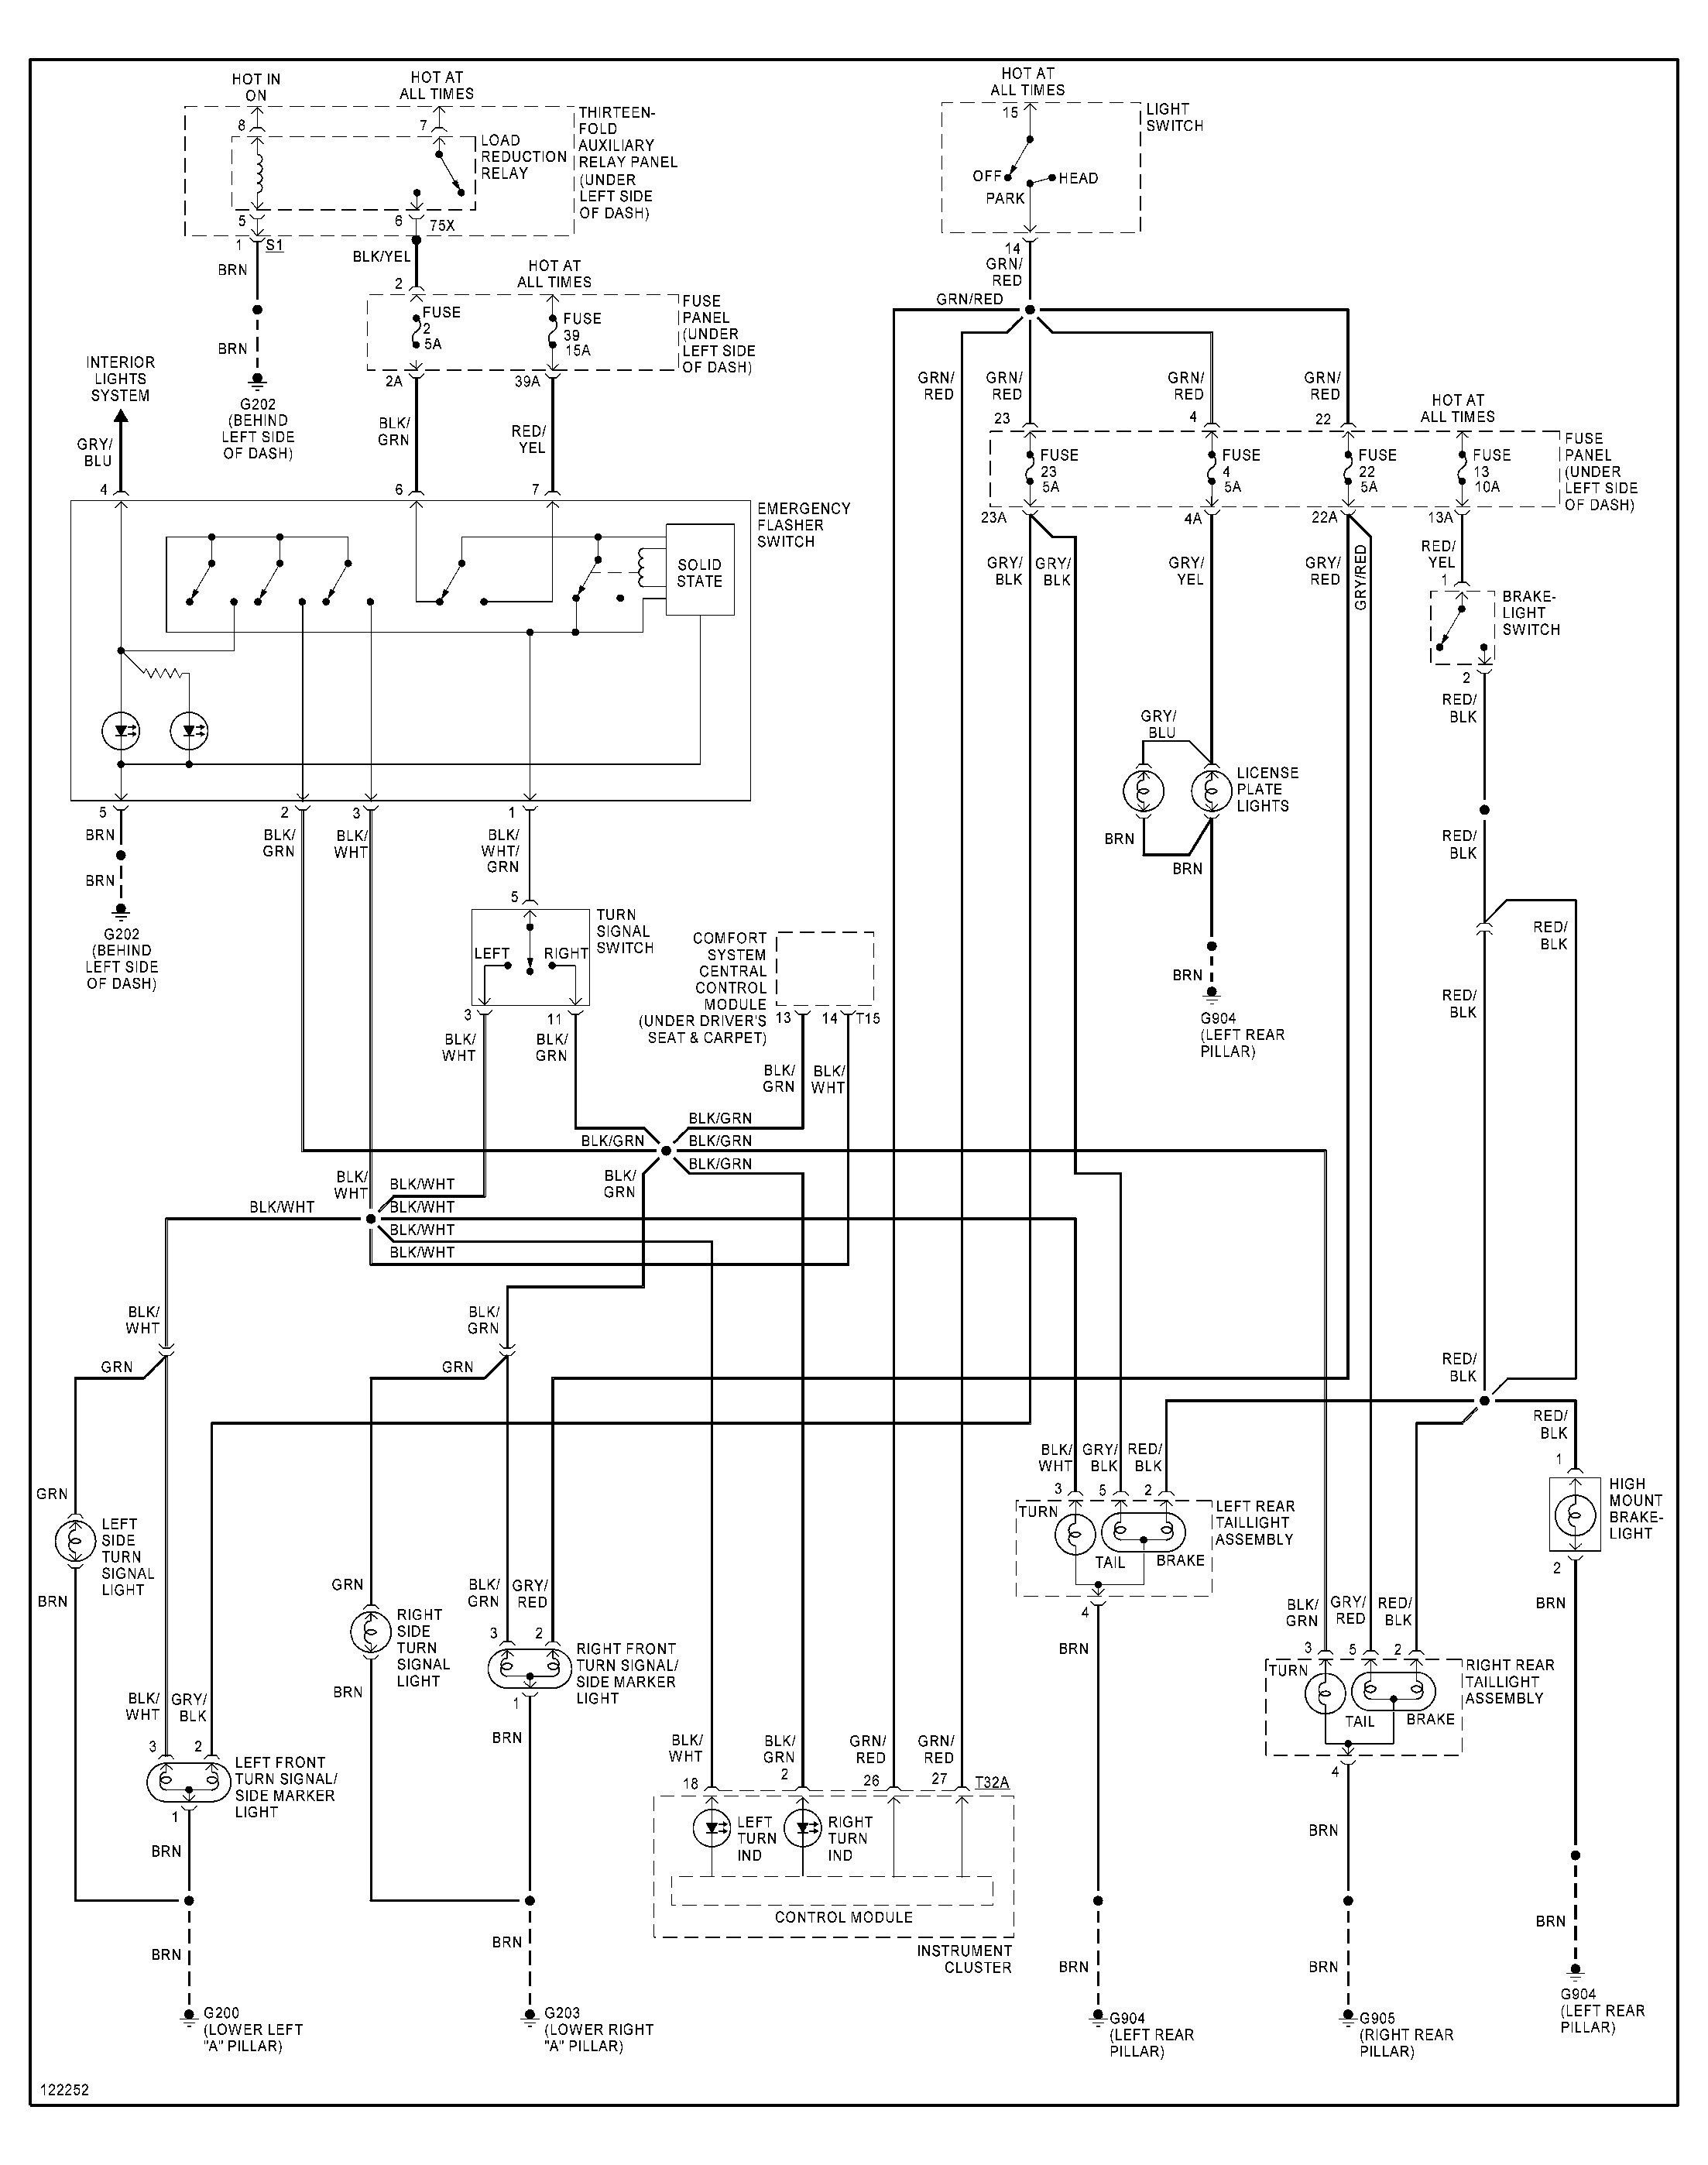 New Golf 4 Radio Wiring Diagram Diagram Diagramsample Diagramtemplate Check More At Https Morningculture C Diagram Electrical Wiring Diagram 2006 Vw Jetta